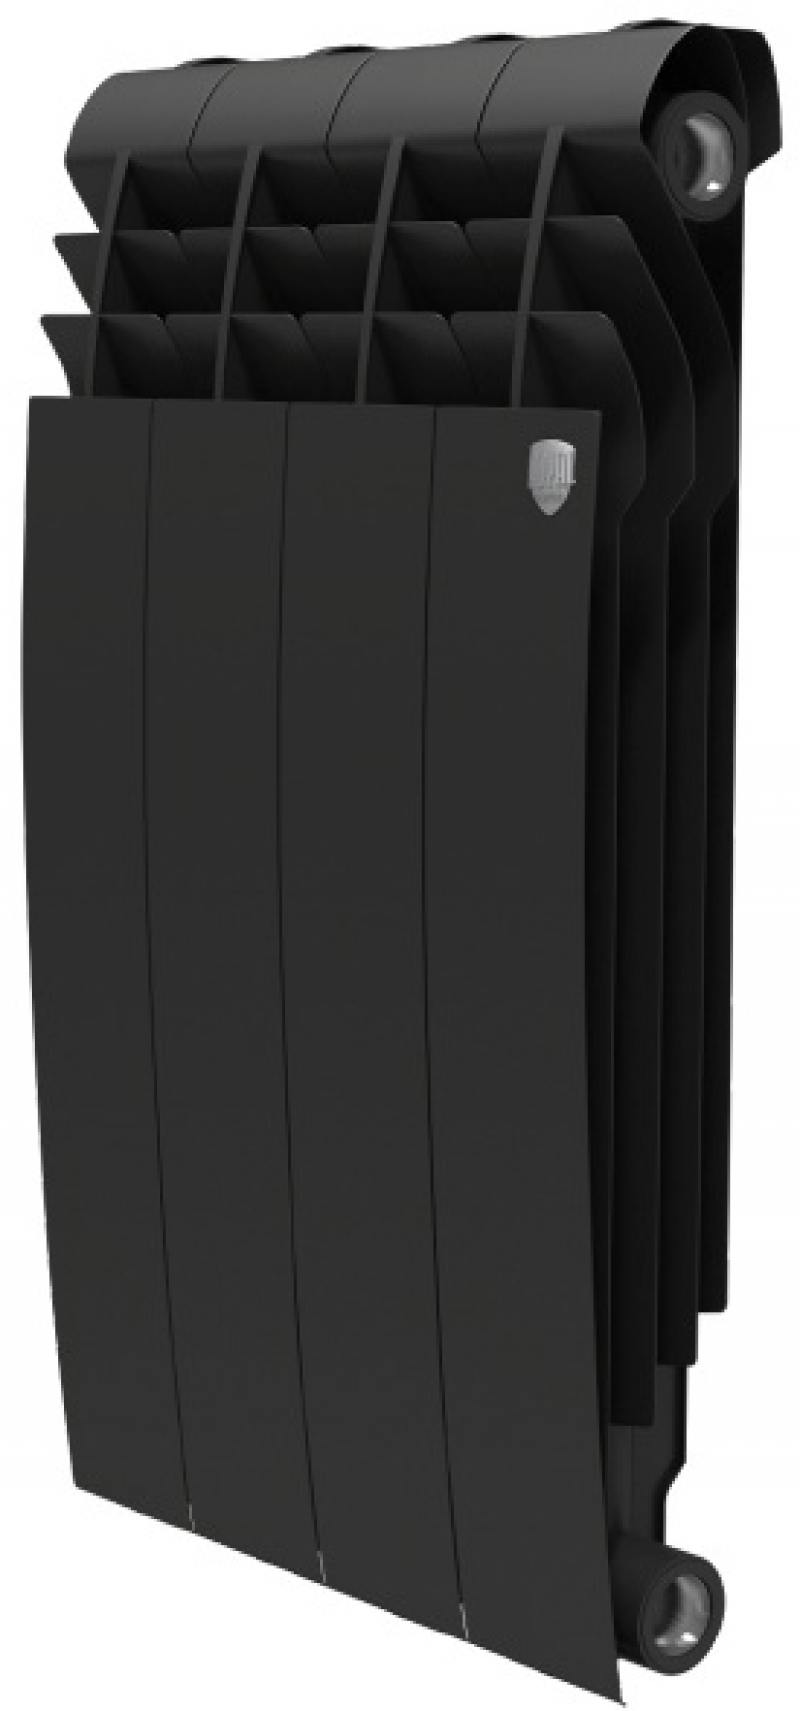 Радиатор Royal Thermo BiLiner 500 Noir Sable 4 секции